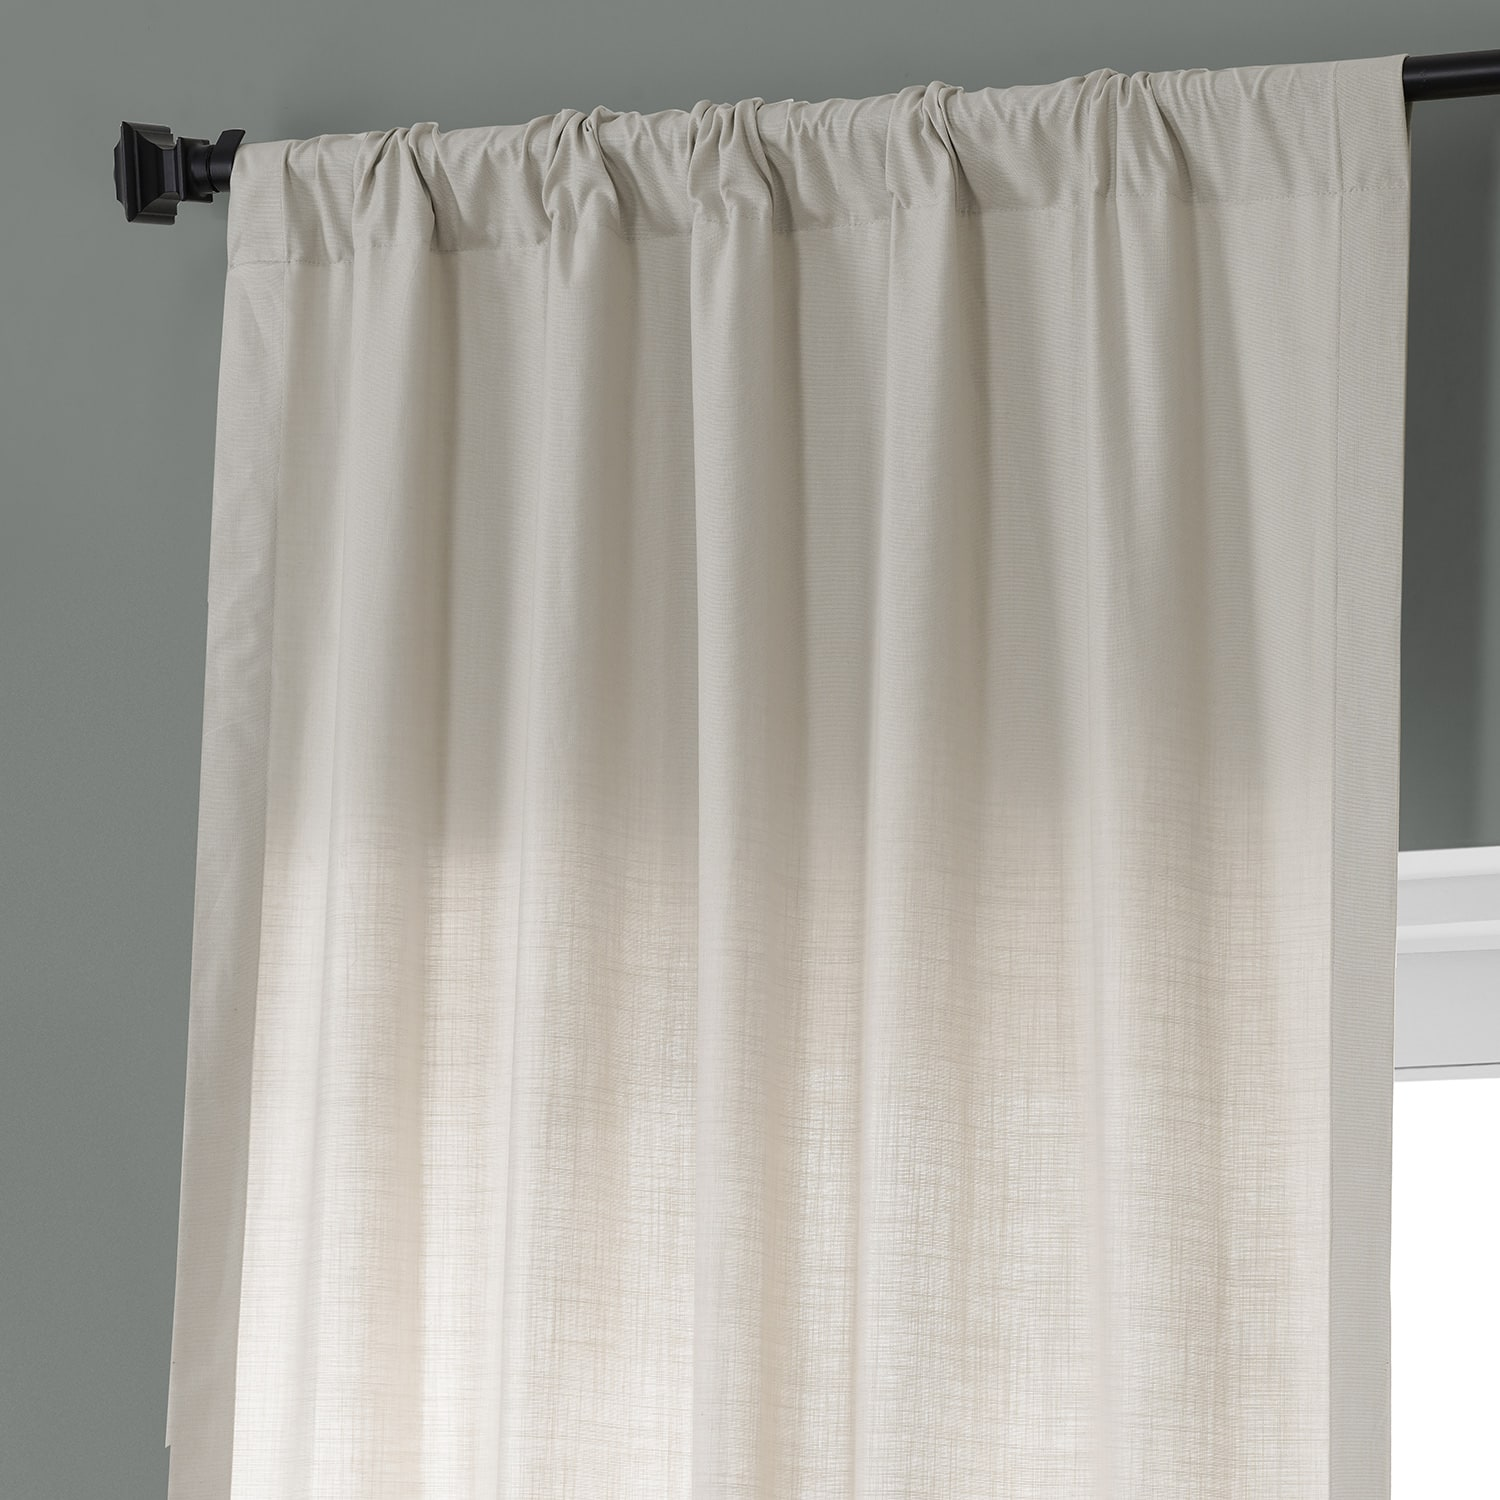 Fable Beige Dune Textured Solid Cotton Curtain Pair (2 Panels)